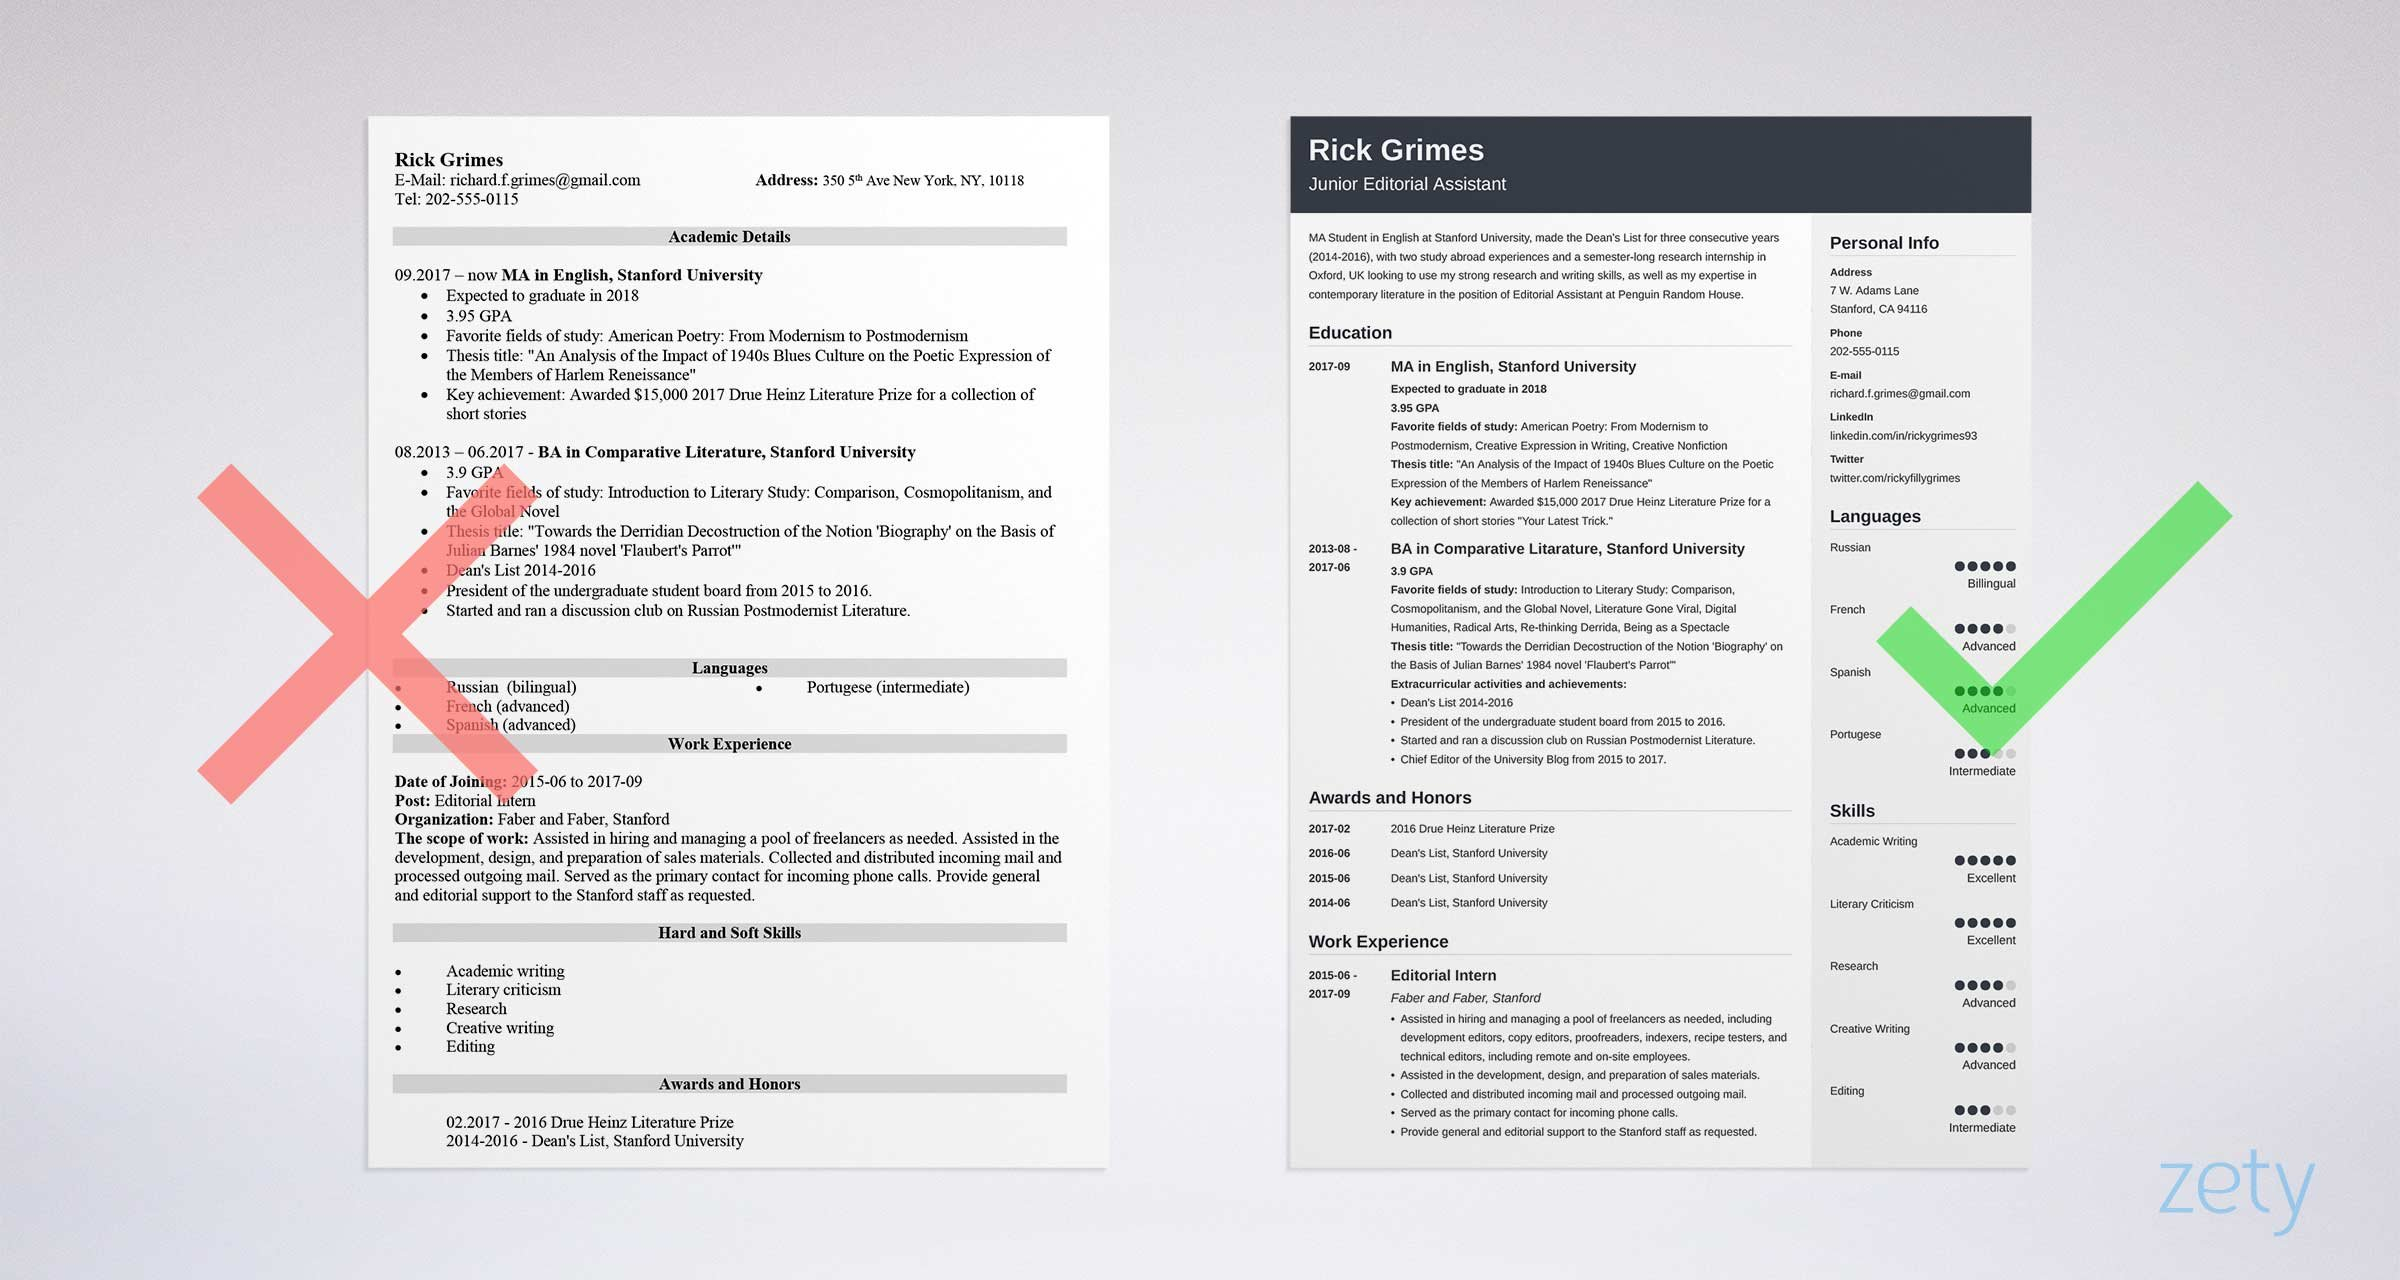 Data Entry Skills Resume - Entry Level Resume Sample and Plete Guide [ 20 Examples]